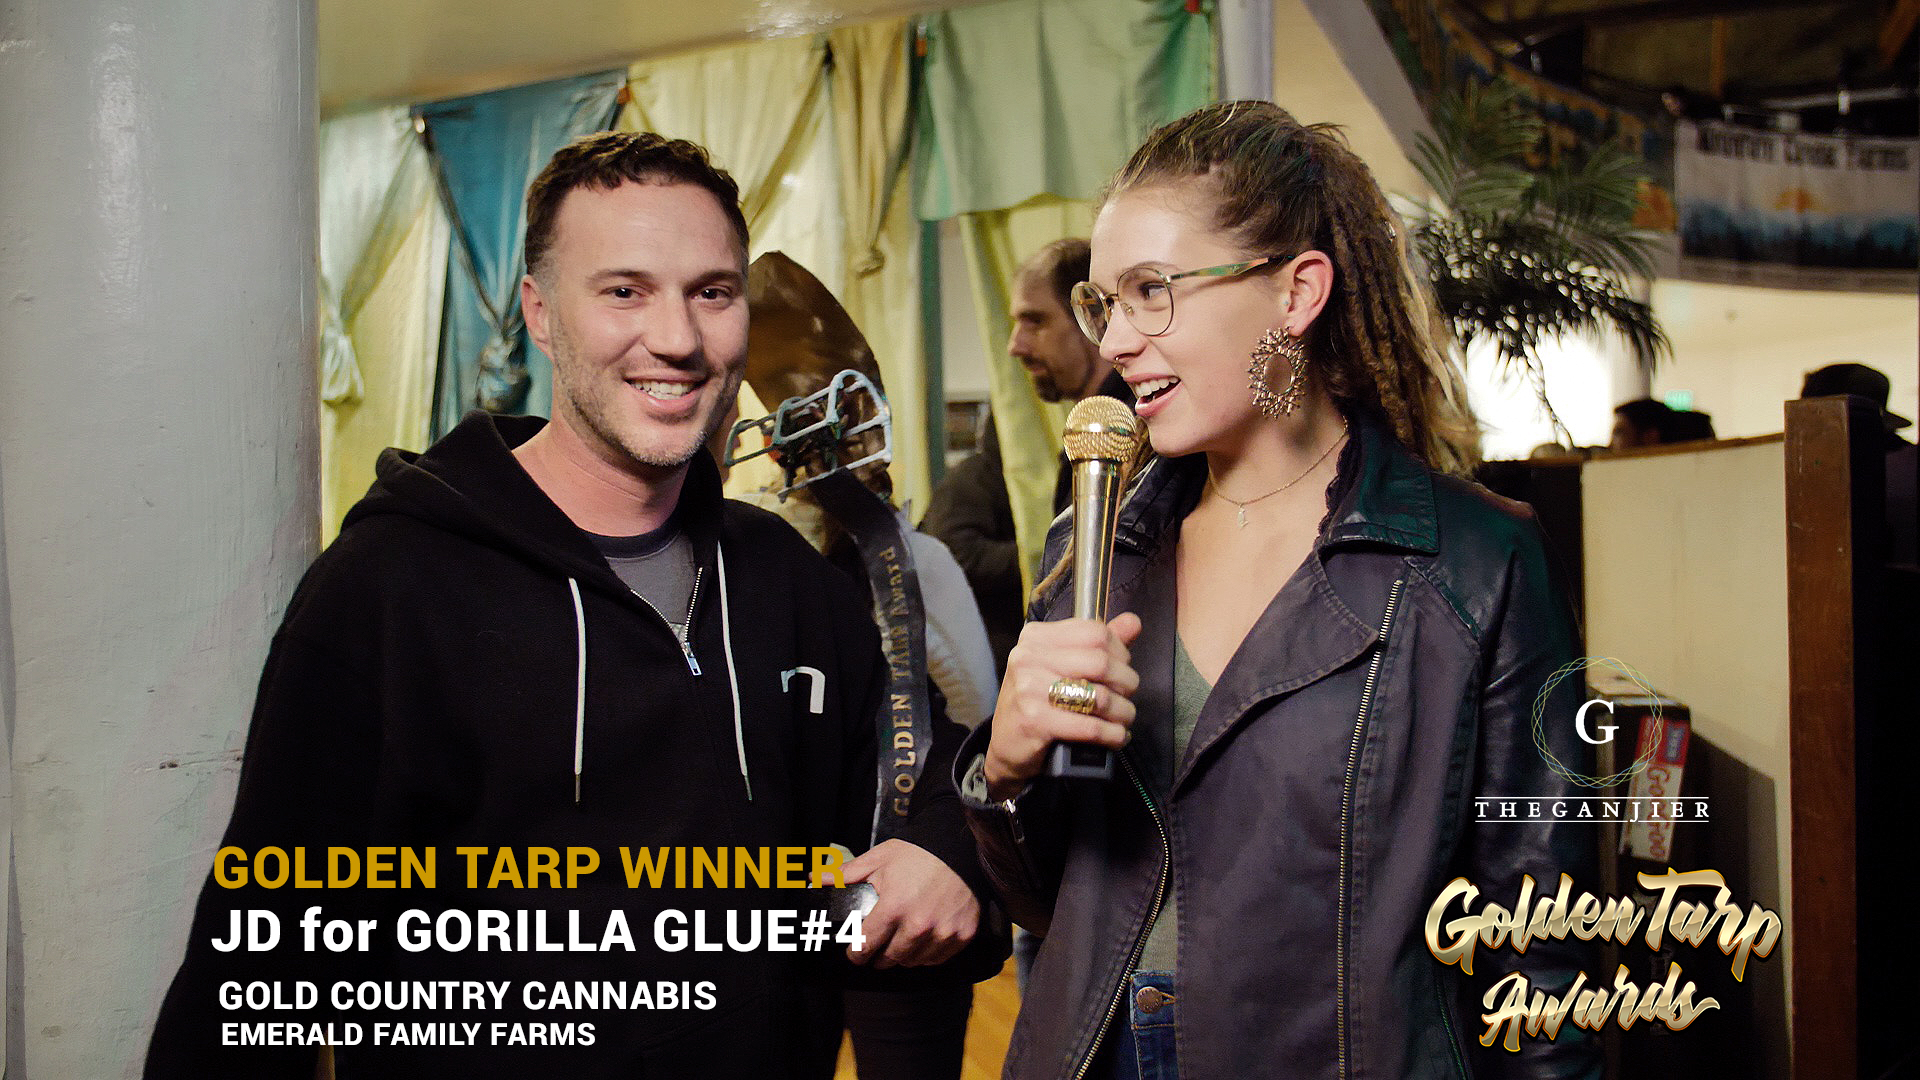 JD of Gold Coast Cannabis, an Emerald Family Farm member, wins the top Golden Tarp Award for his Gorilla Glue!